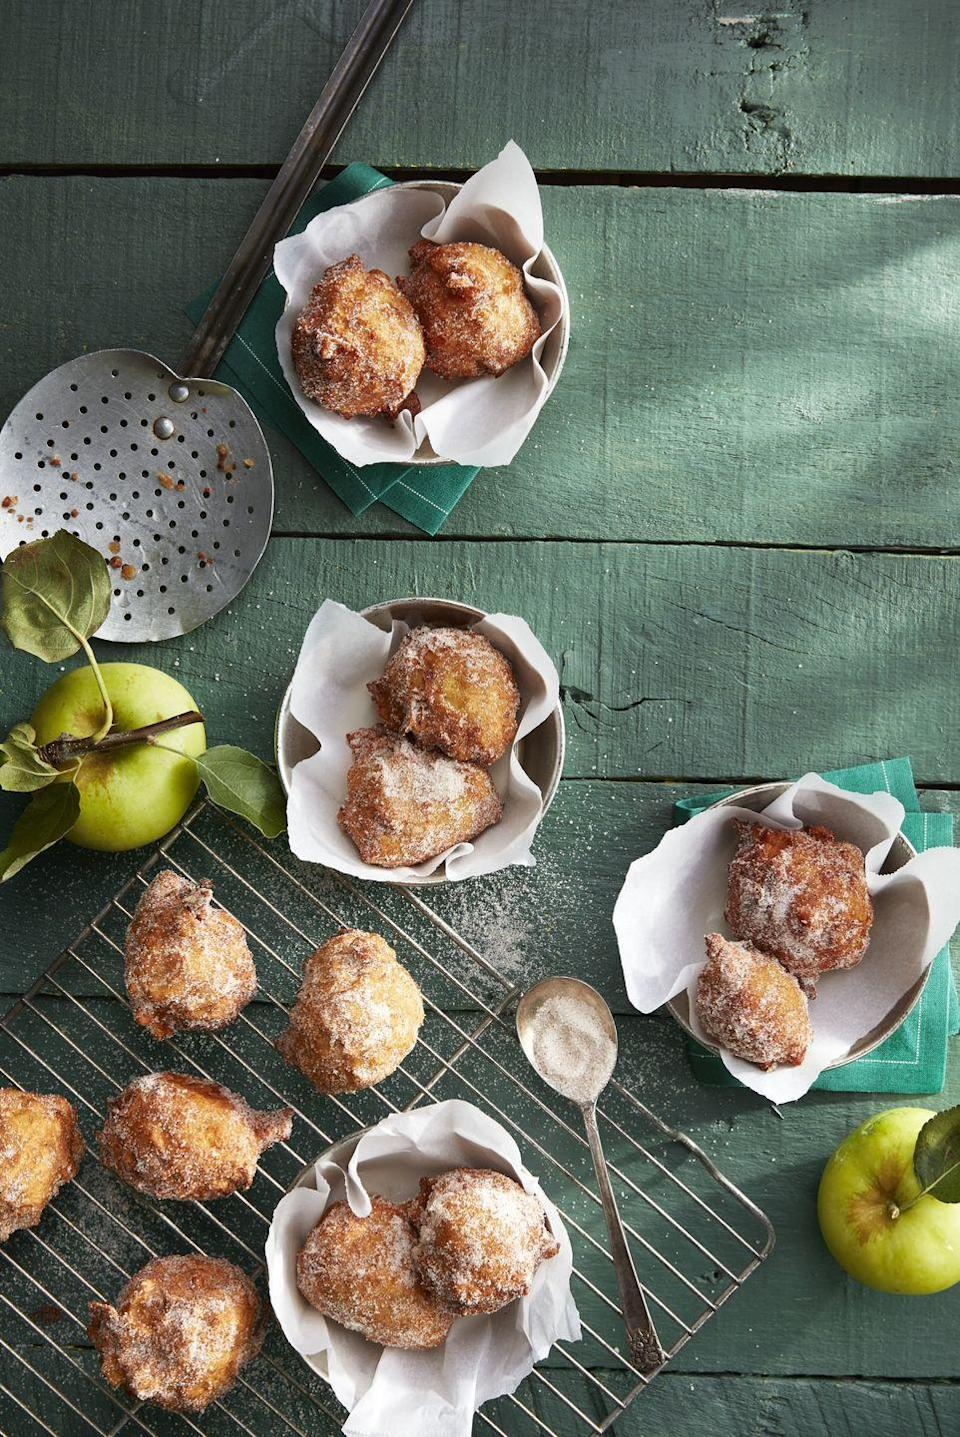 "<p>Love apple pie, but looking for something a little more outside-the-box to wow your crowd with this year? These pie-spiced apple fritters pack the same (albeit even sweeter) flavor and only take 30 minutes to make. Read: Apple pie has officially met its dessert match. </p><p><strong><a href=""https://www.countryliving.com/food-drinks/a23390937/pie-spiced-apple-fritters-recipe/"" rel=""nofollow noopener"" target=""_blank"" data-ylk=""slk:Get the recipe"" class=""link rapid-noclick-resp"">Get the recipe</a>.</strong></p><p><strong><a class=""link rapid-noclick-resp"" href=""https://www.amazon.com/Lodge-Enameled-Classic-Enamel-Island/dp/B000N501BK/?tag=syn-yahoo-20&ascsubtag=%5Bartid%7C10050.g.2633%5Bsrc%7Cyahoo-us"" rel=""nofollow noopener"" target=""_blank"" data-ylk=""slk:SHOP DUTCH OVENS"">SHOP DUTCH OVENS</a><br></strong></p>"